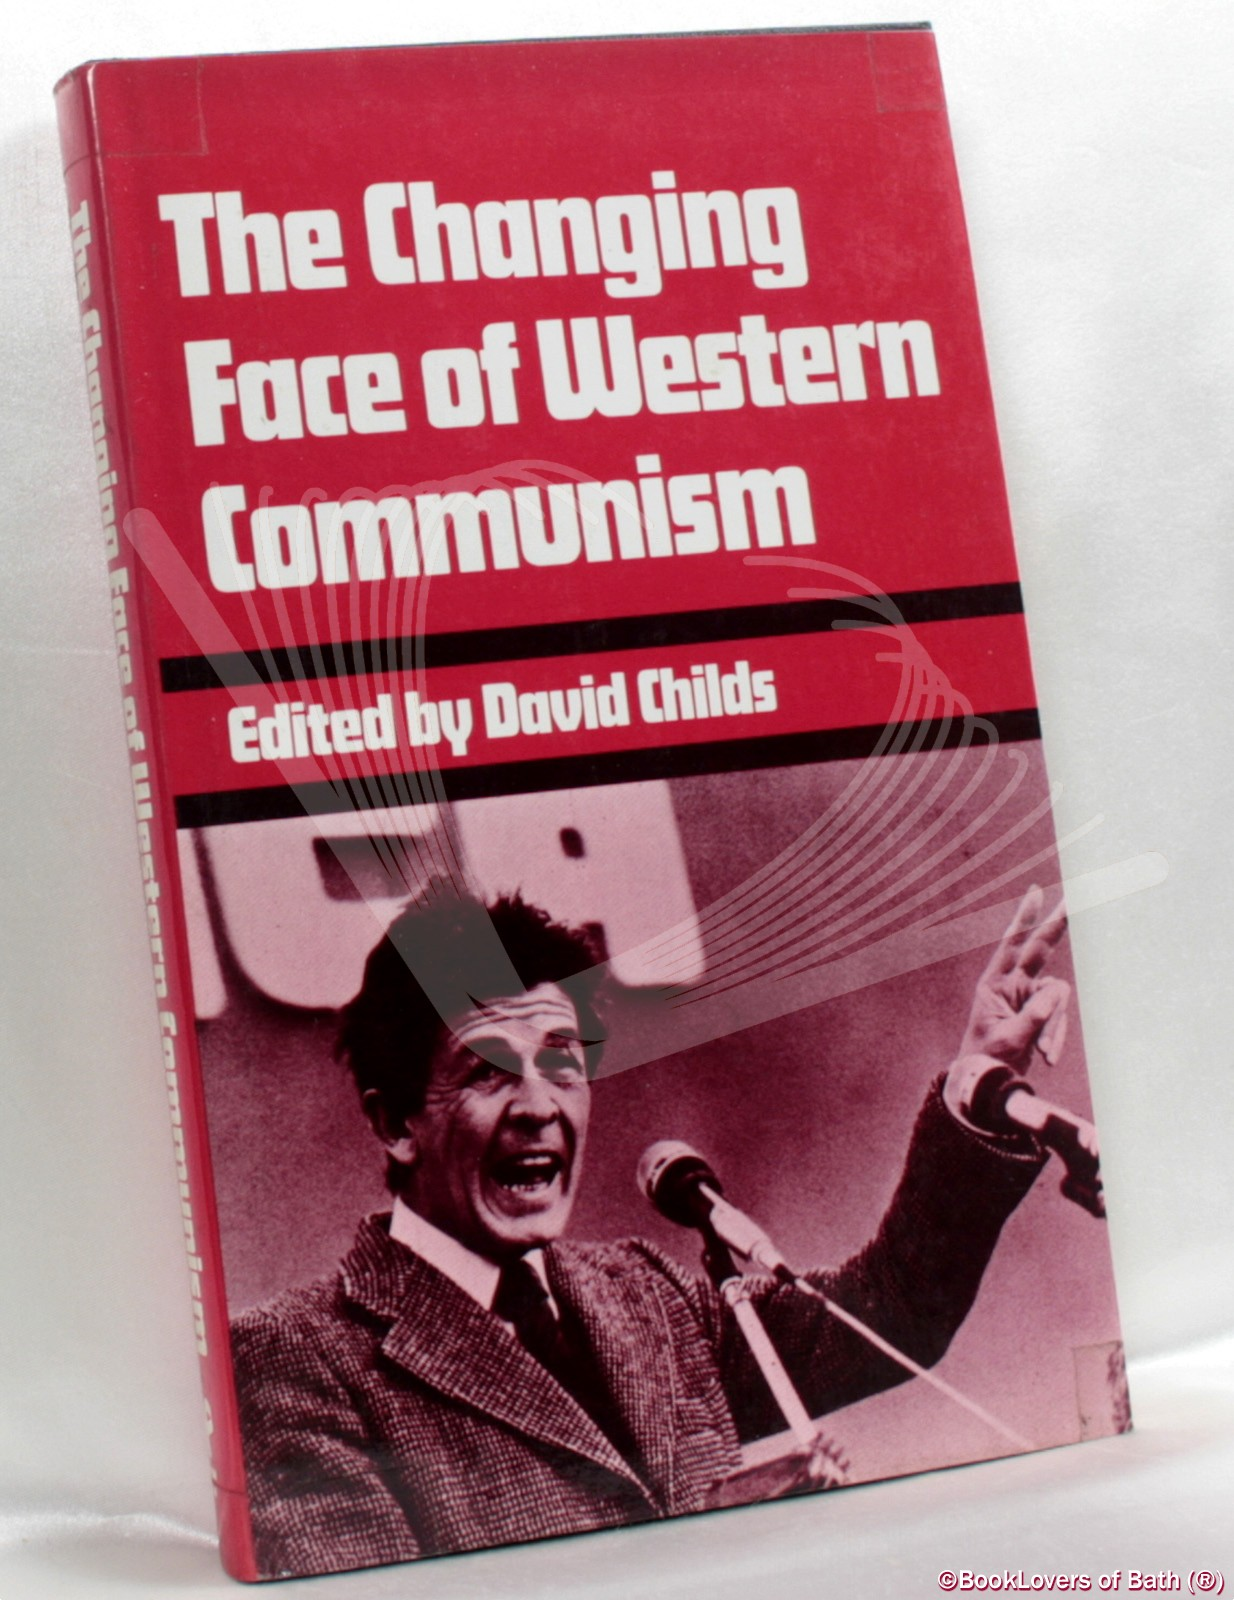 The Changing Face of Western Communism - David Childs